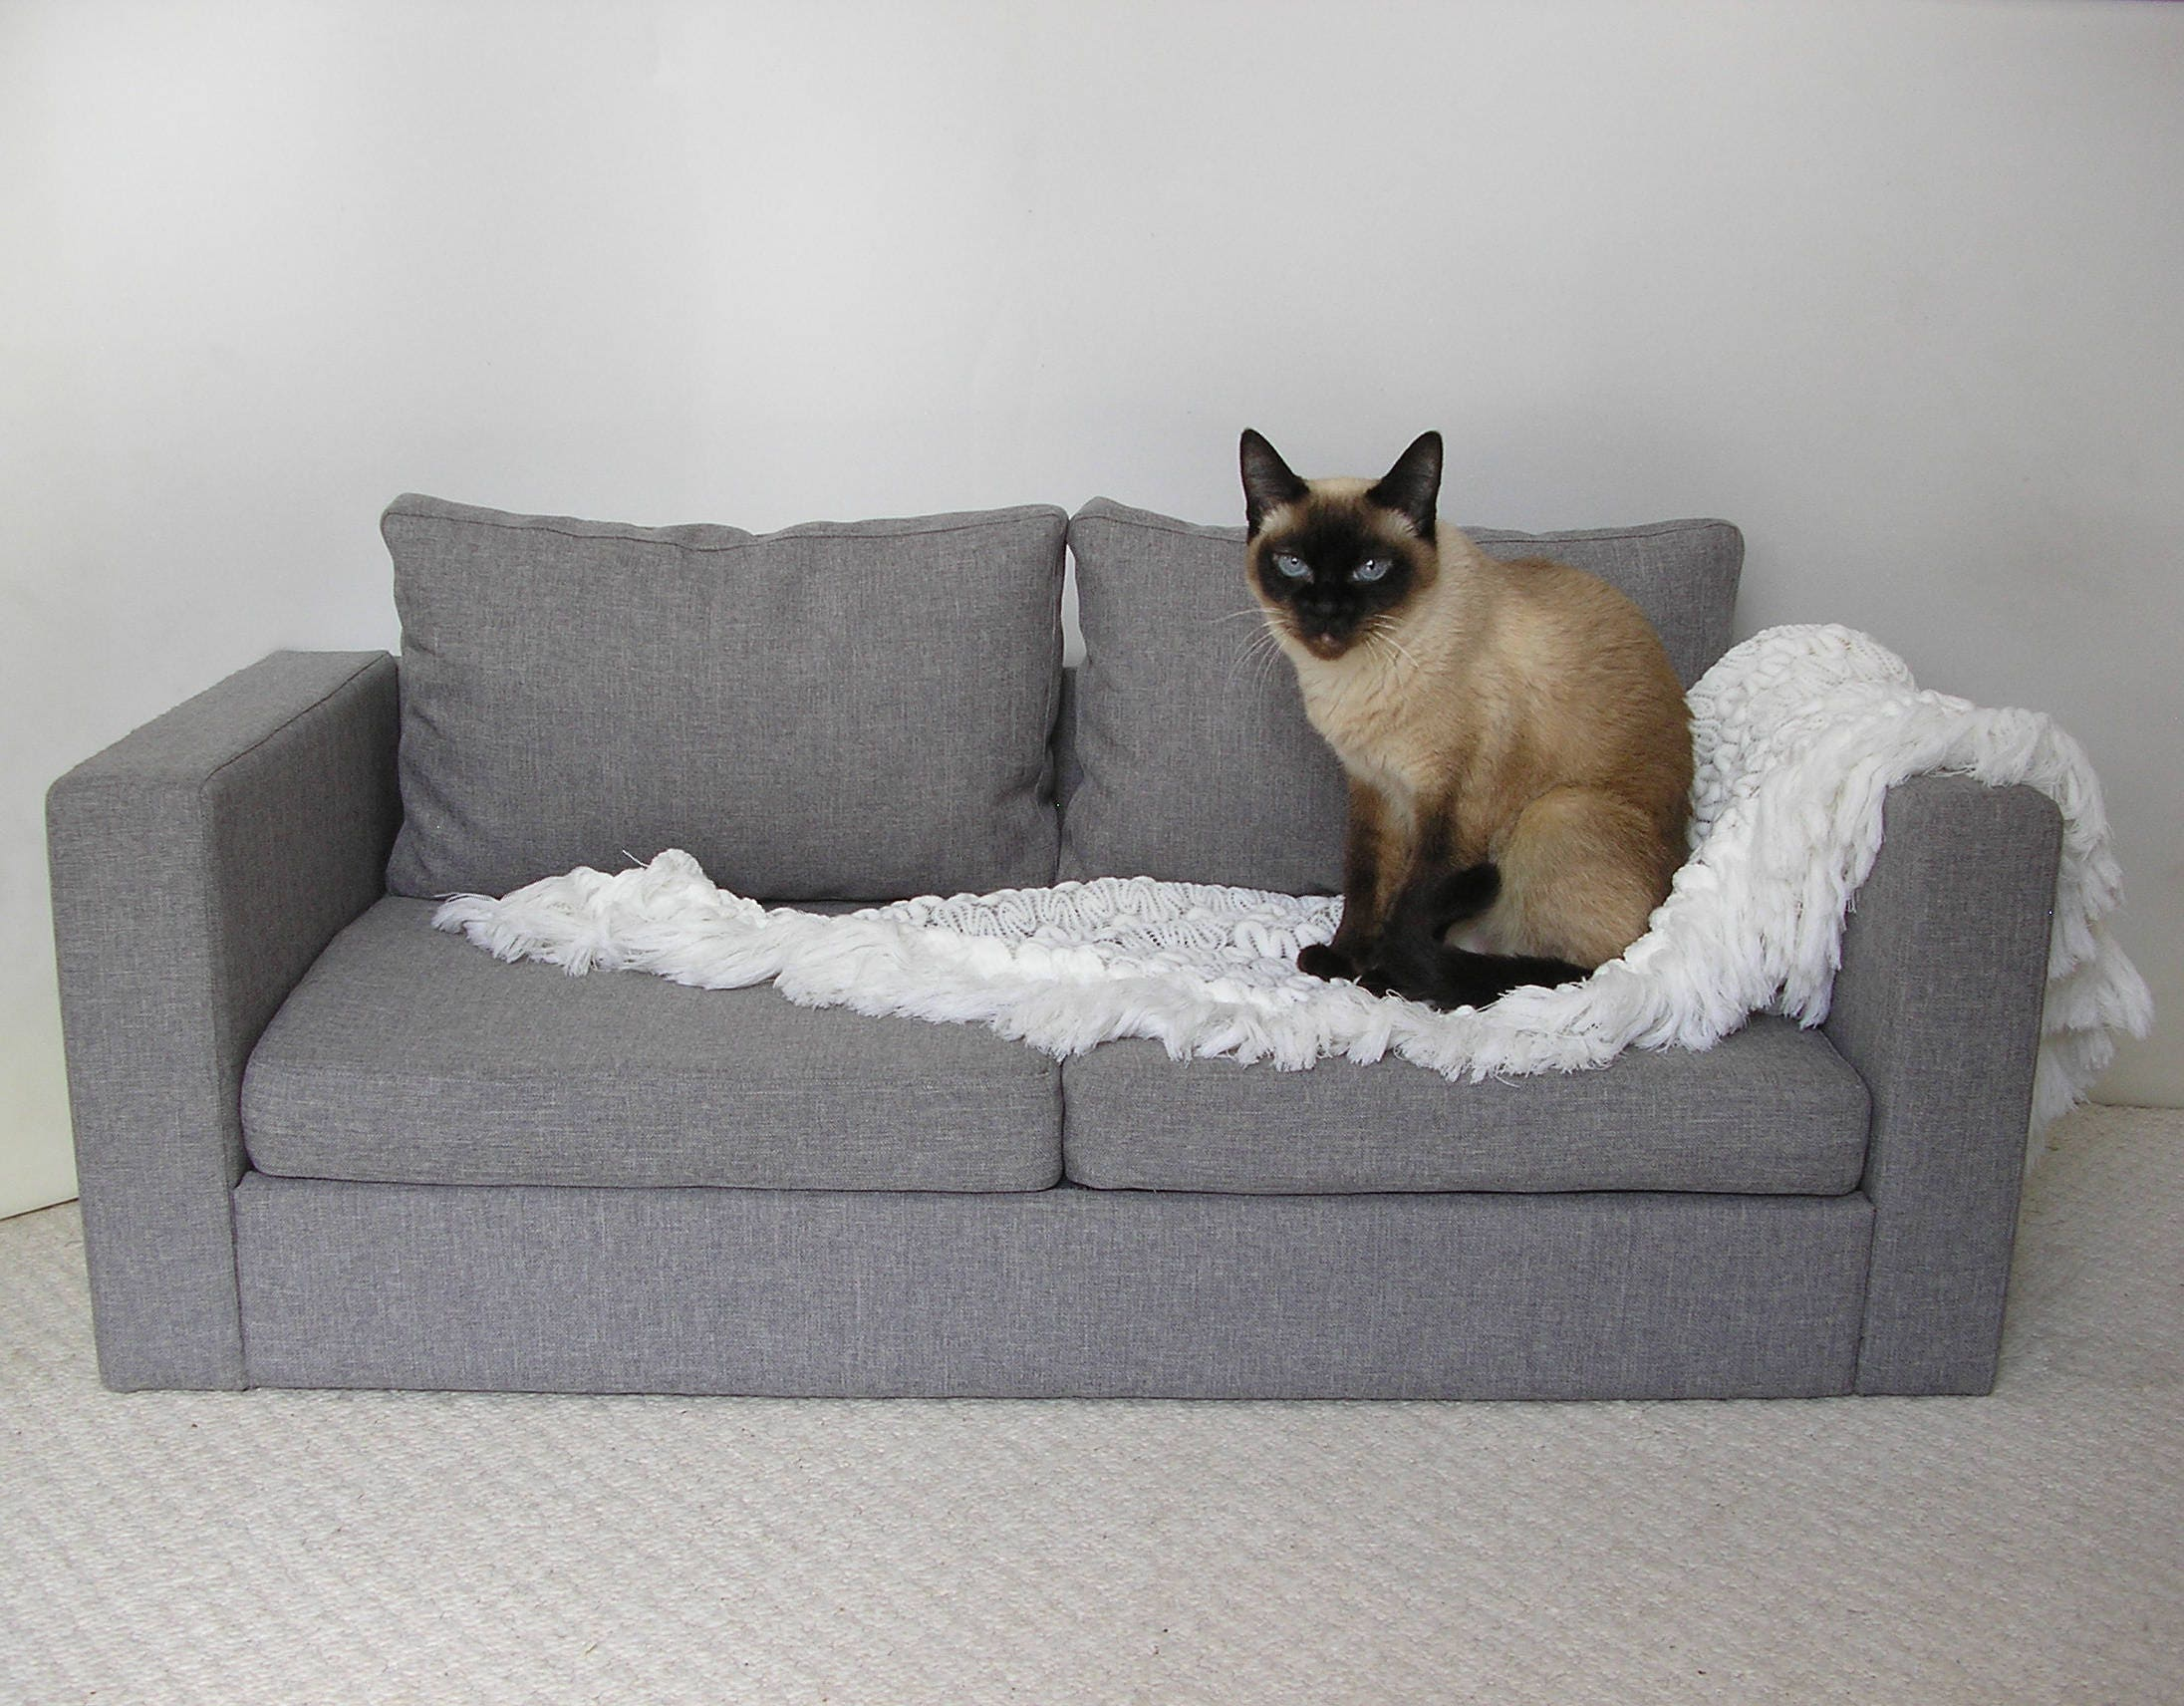 mini copy of ikea sofa for two cats sofa dog sofa pet pet. Black Bedroom Furniture Sets. Home Design Ideas